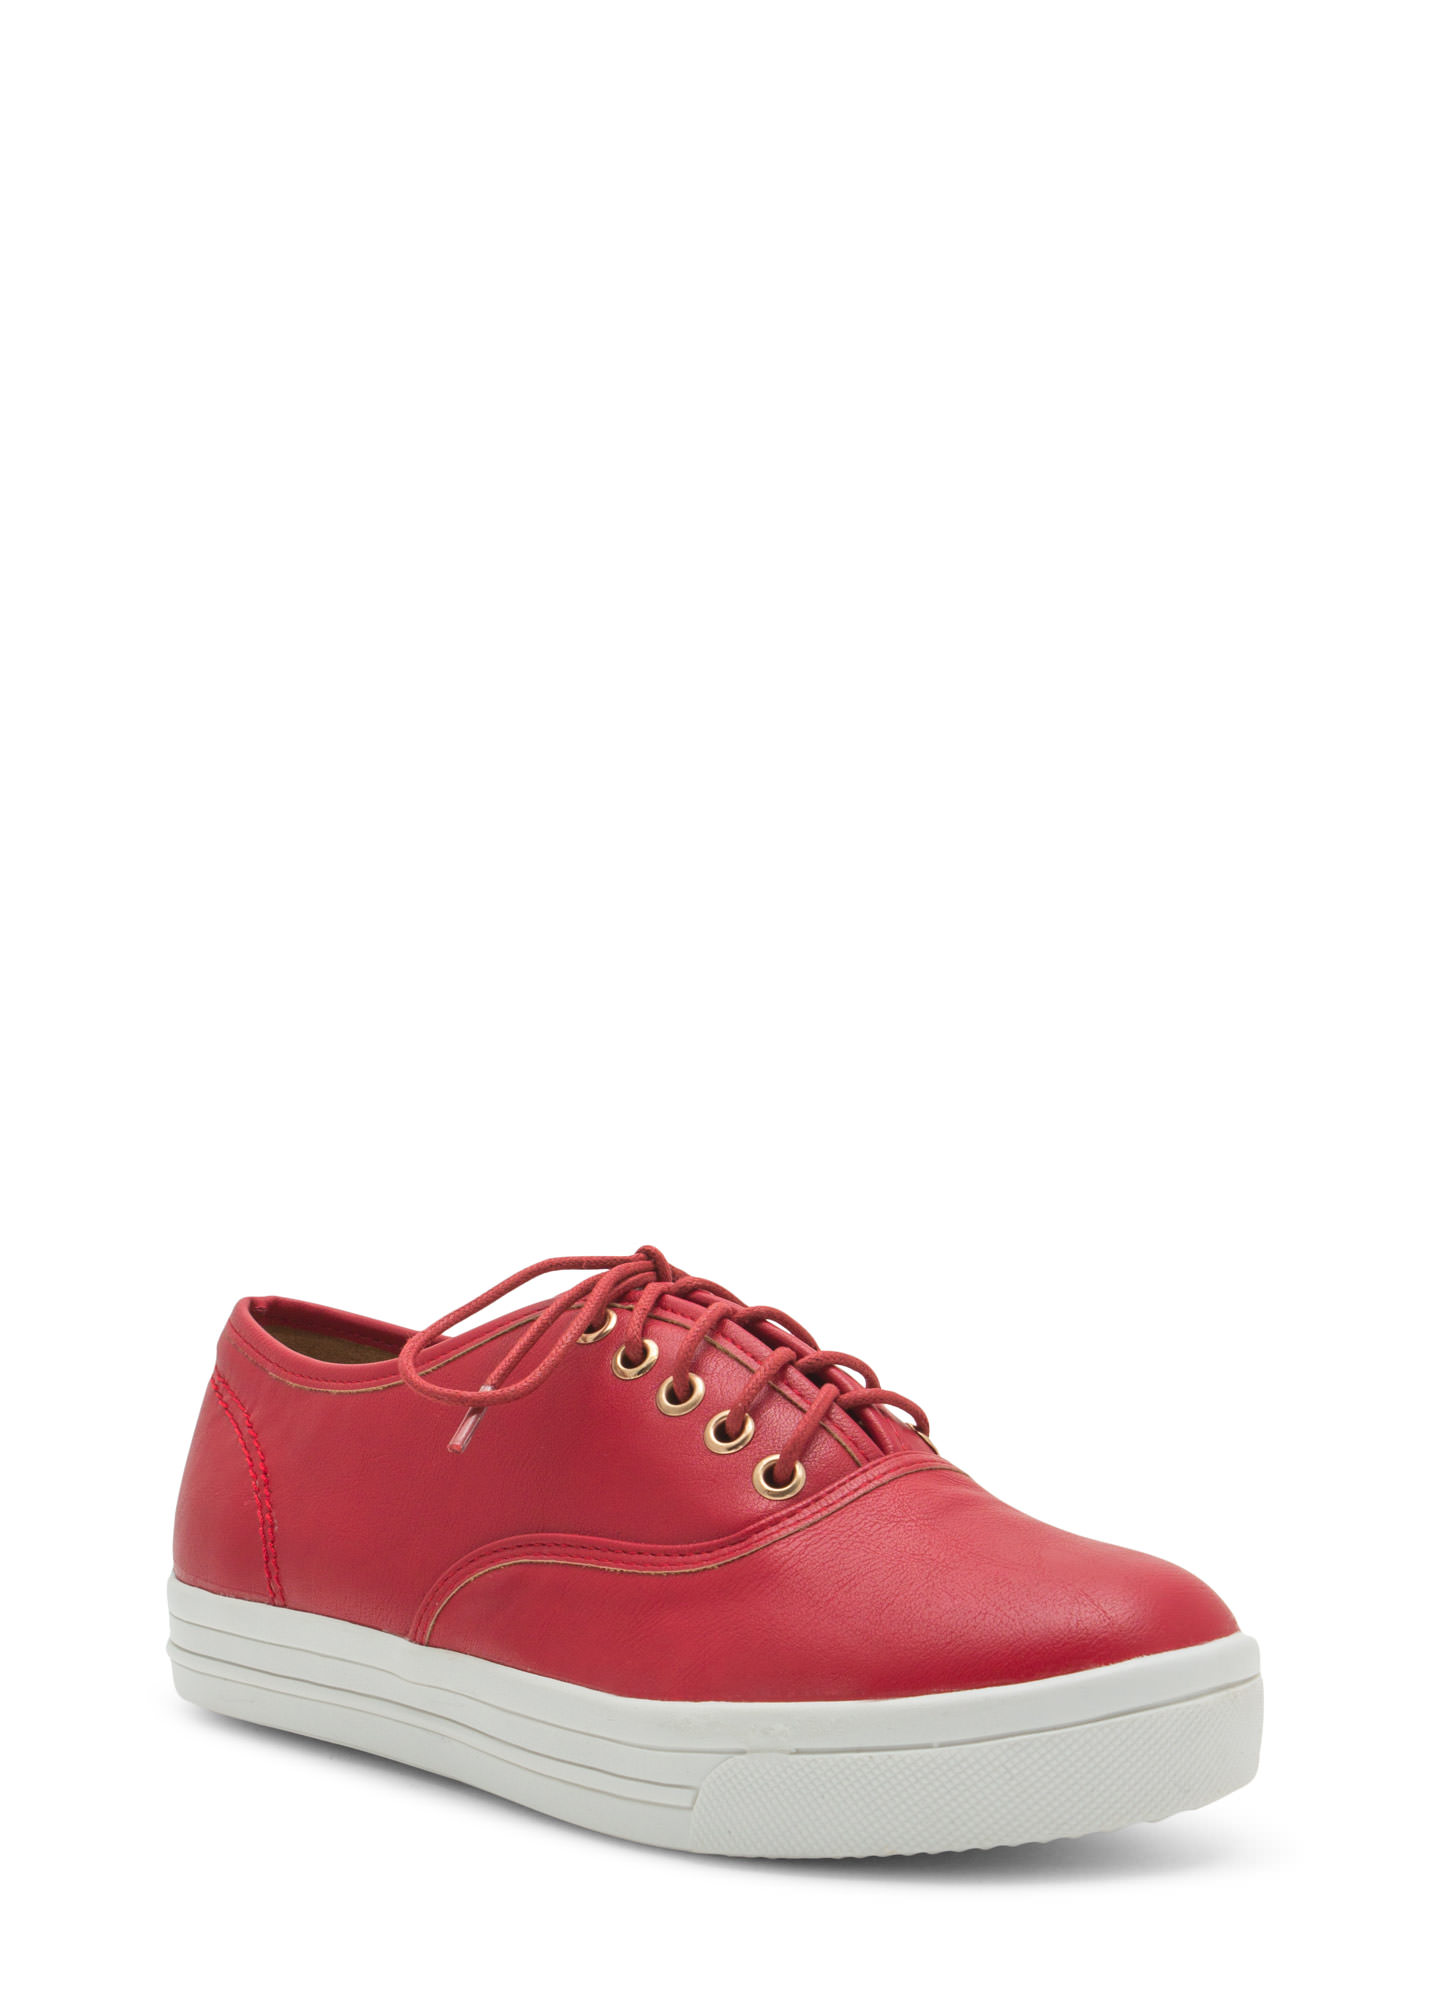 Rock Out Faux Leather Platform Sneakers RED